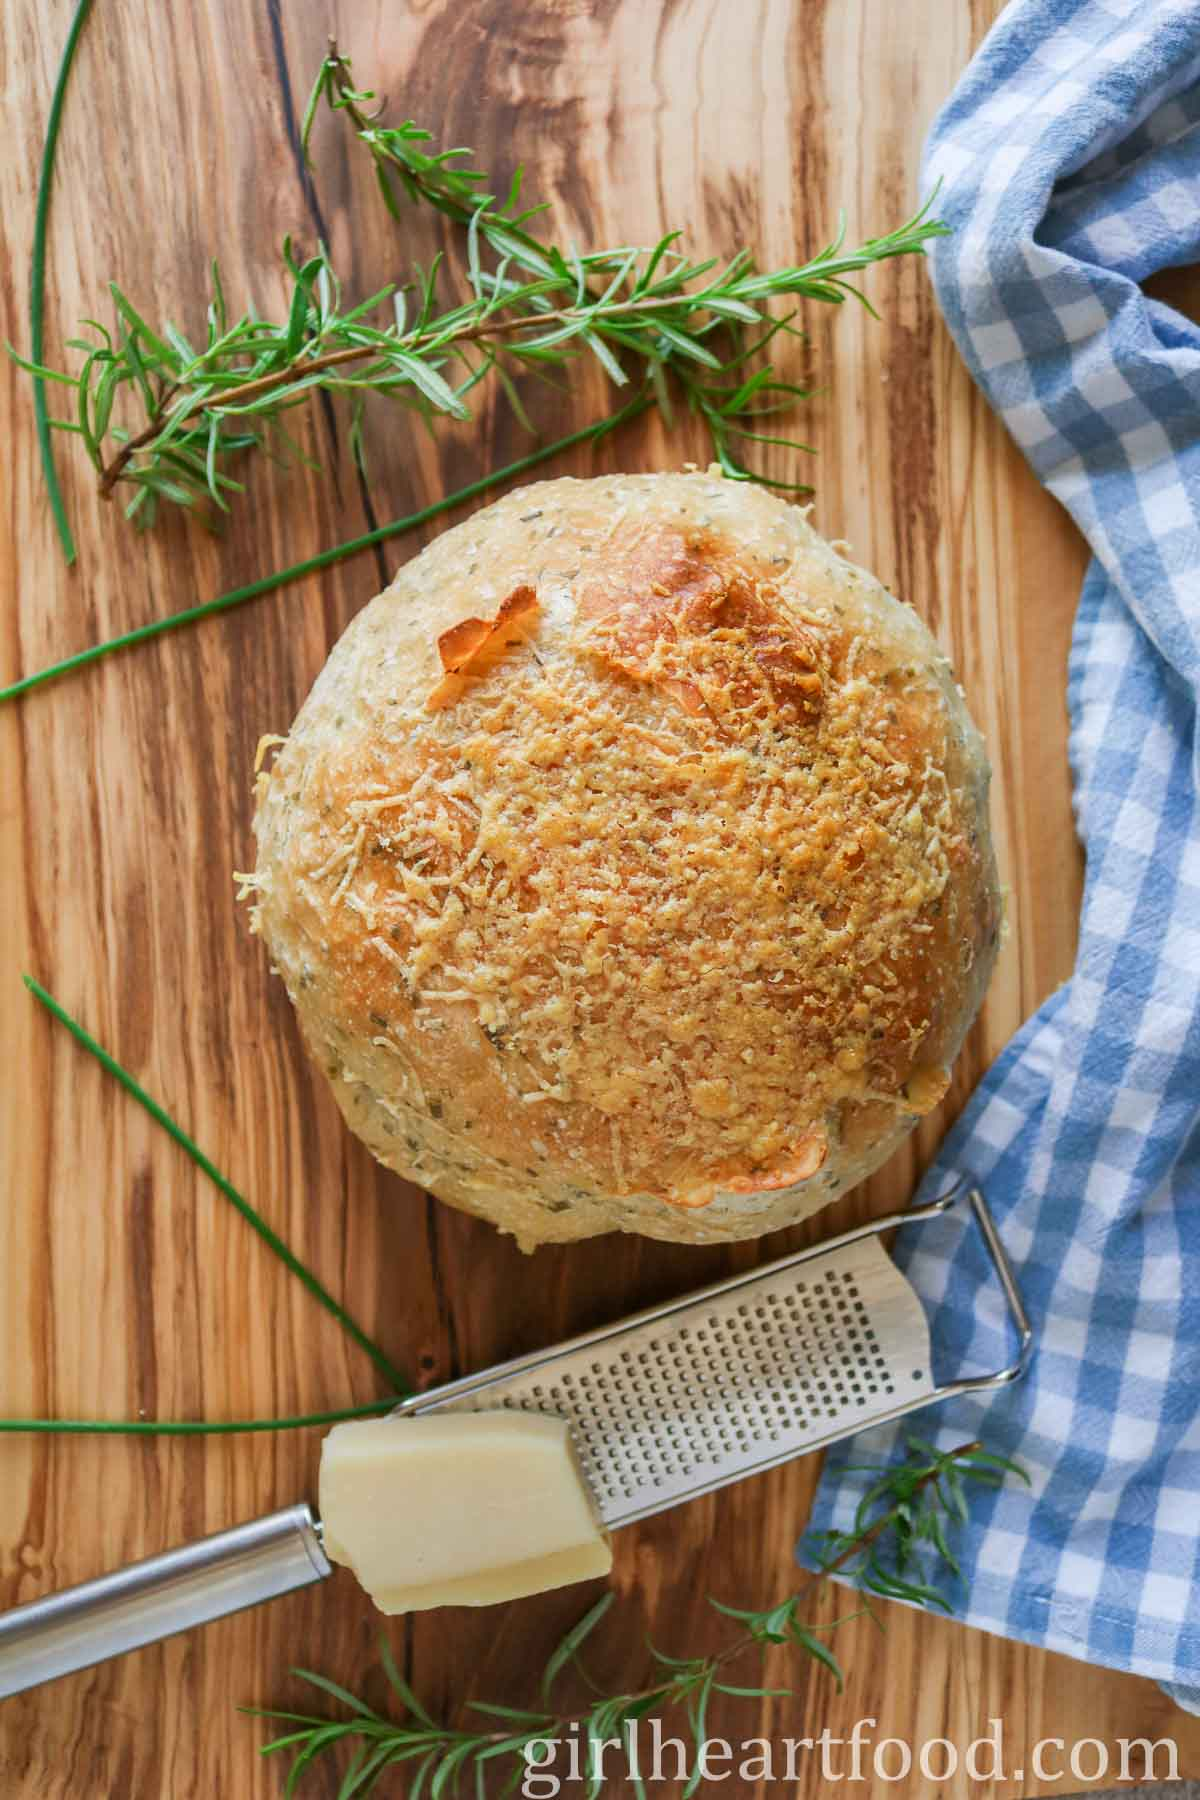 Round loaf of cheesy herb bread alongside fresh herbs, a grater and Parmesan cheese.